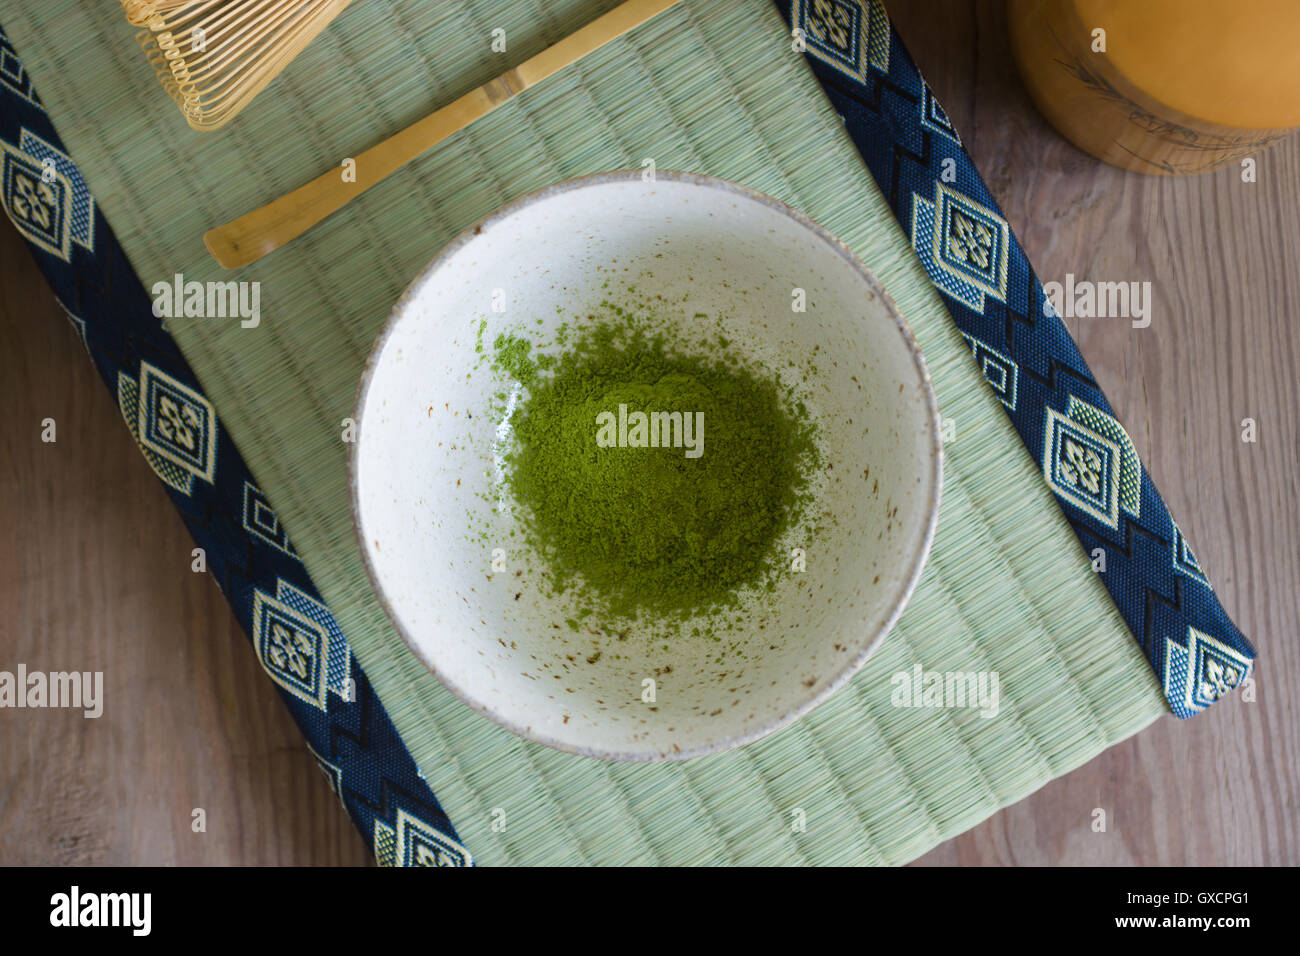 Japanese Matcha green tea powder in a chawan or traditional ceramic bowl shallow focus - Stock Image